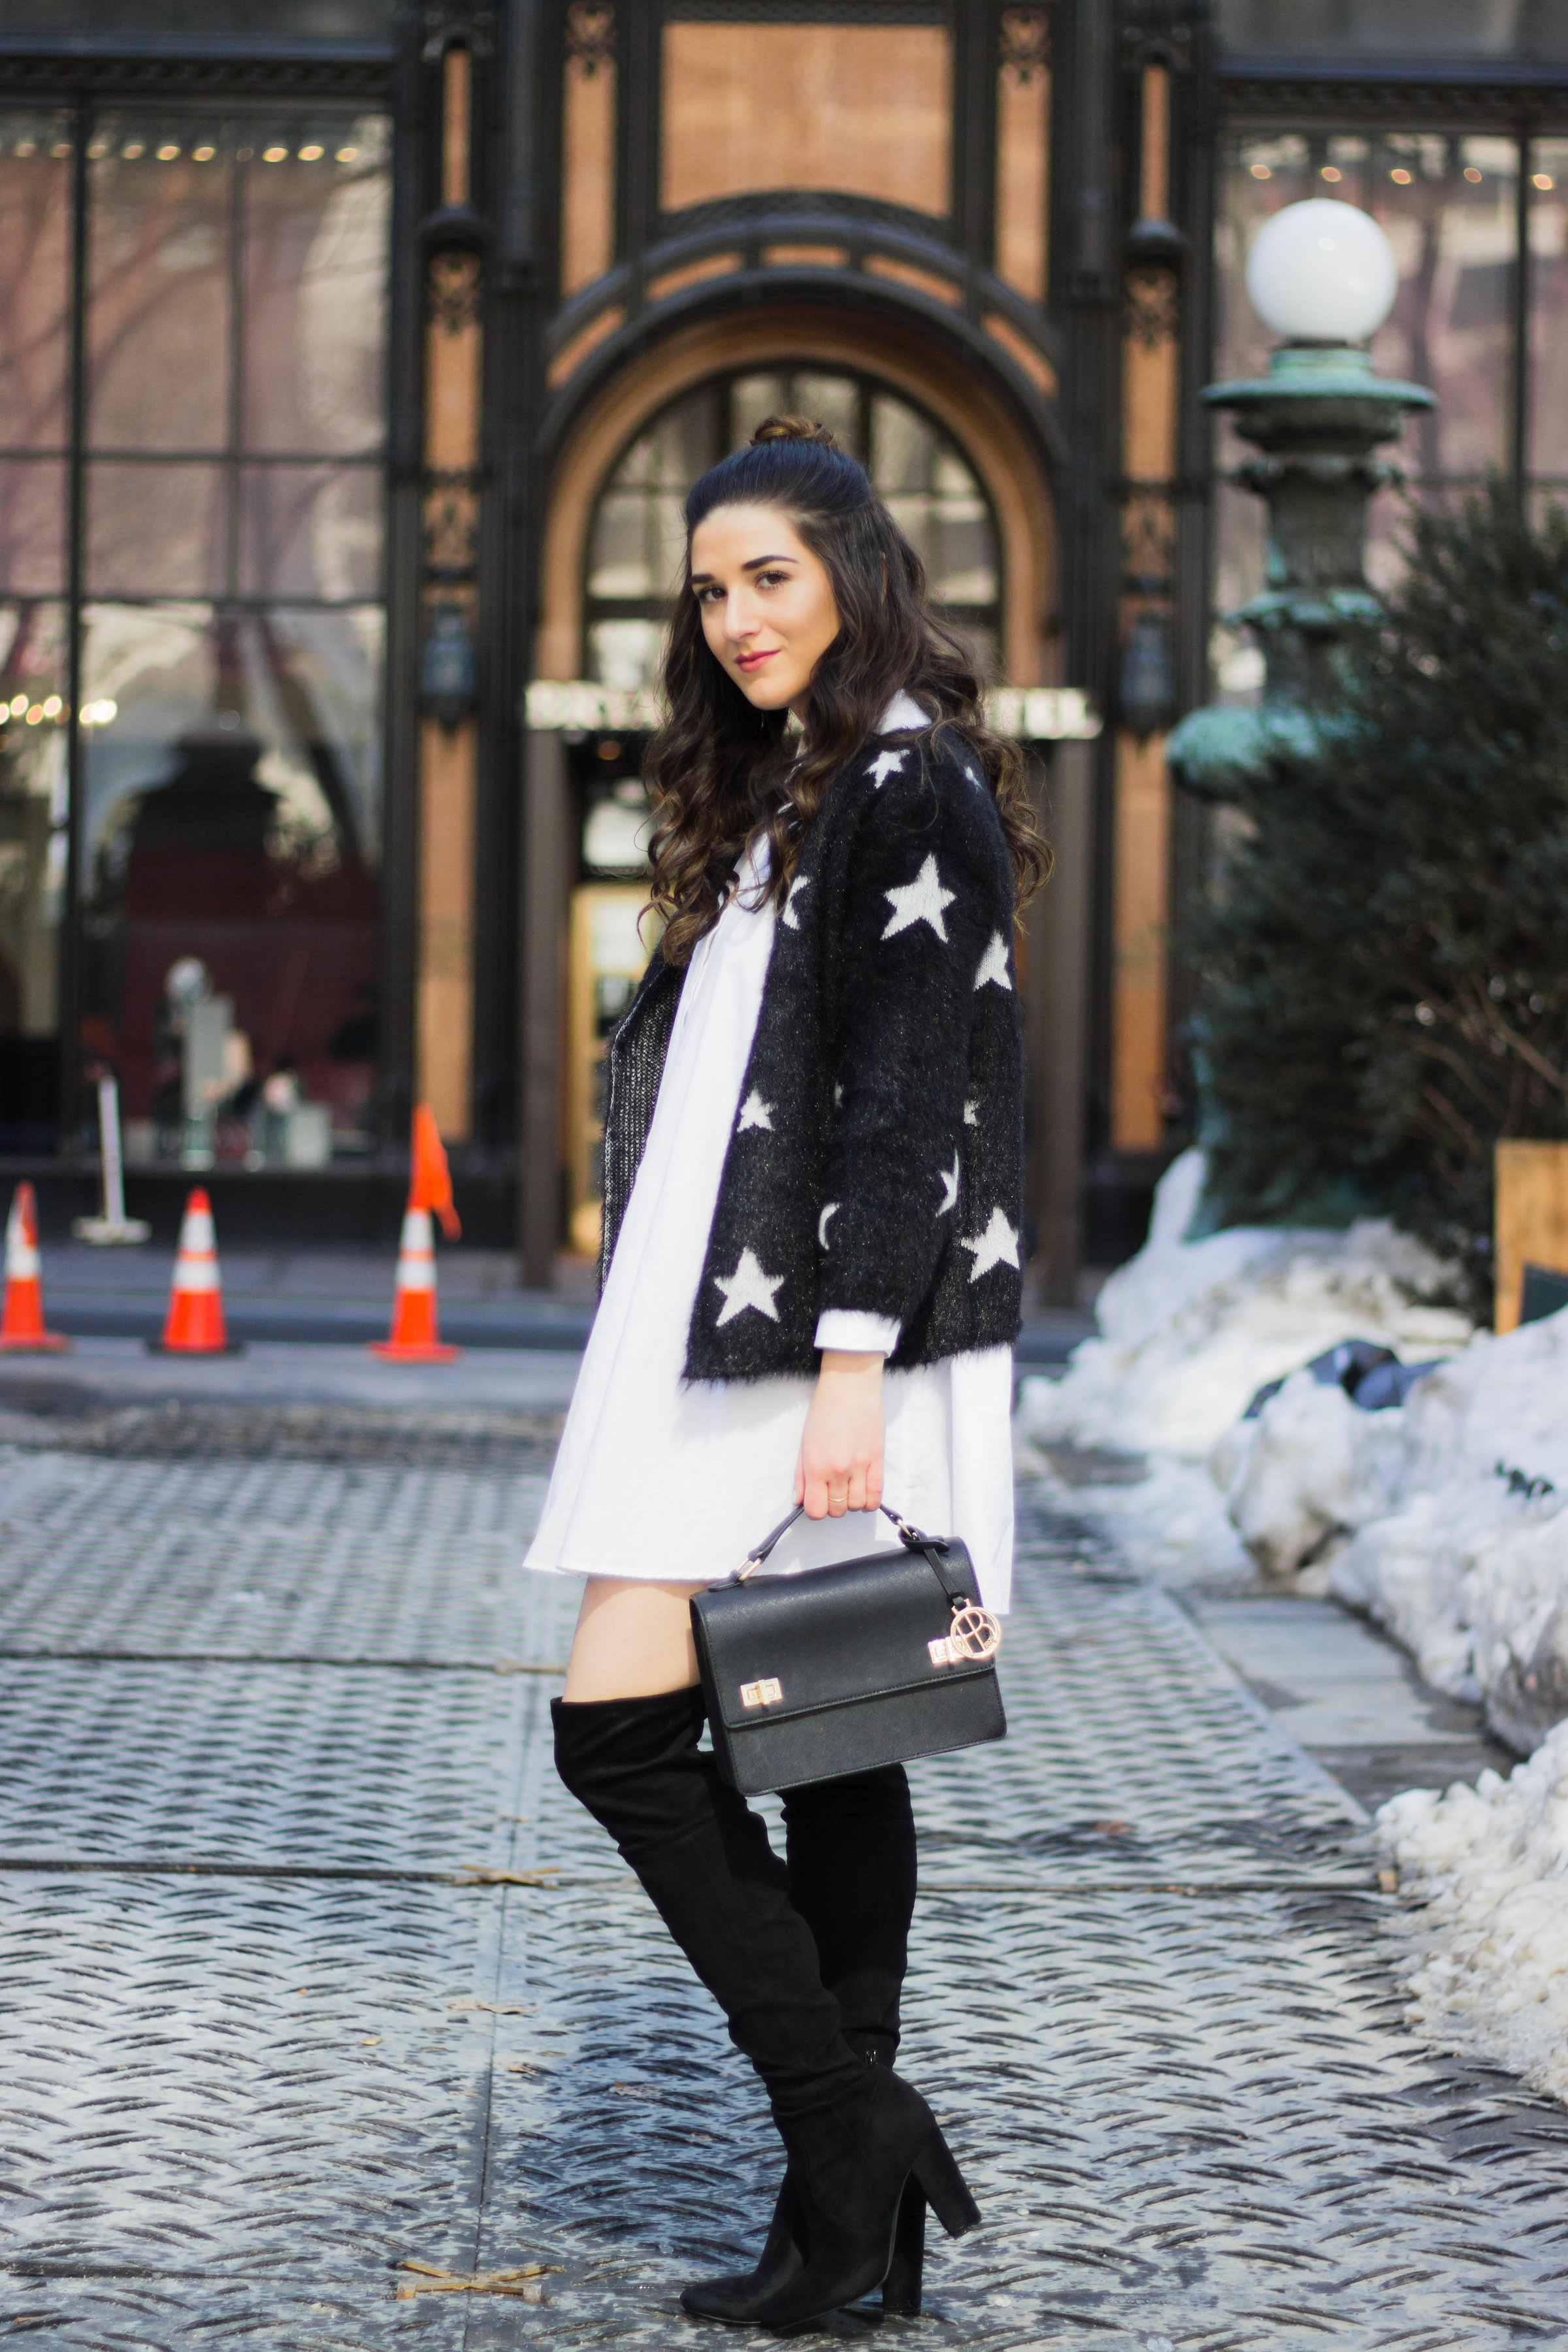 Trescool Star Jacket How NYC Changed My Style Esther Santer Fashion Blog NYC Street Style Blogger Outfit OOTD Trendy Henri Bendel Black Bag Over The Knee Boots Topknot Bun Women Girl White Button Down Shirt Dress Zara Shoes Purse Wearing Shopping Shop.jpg